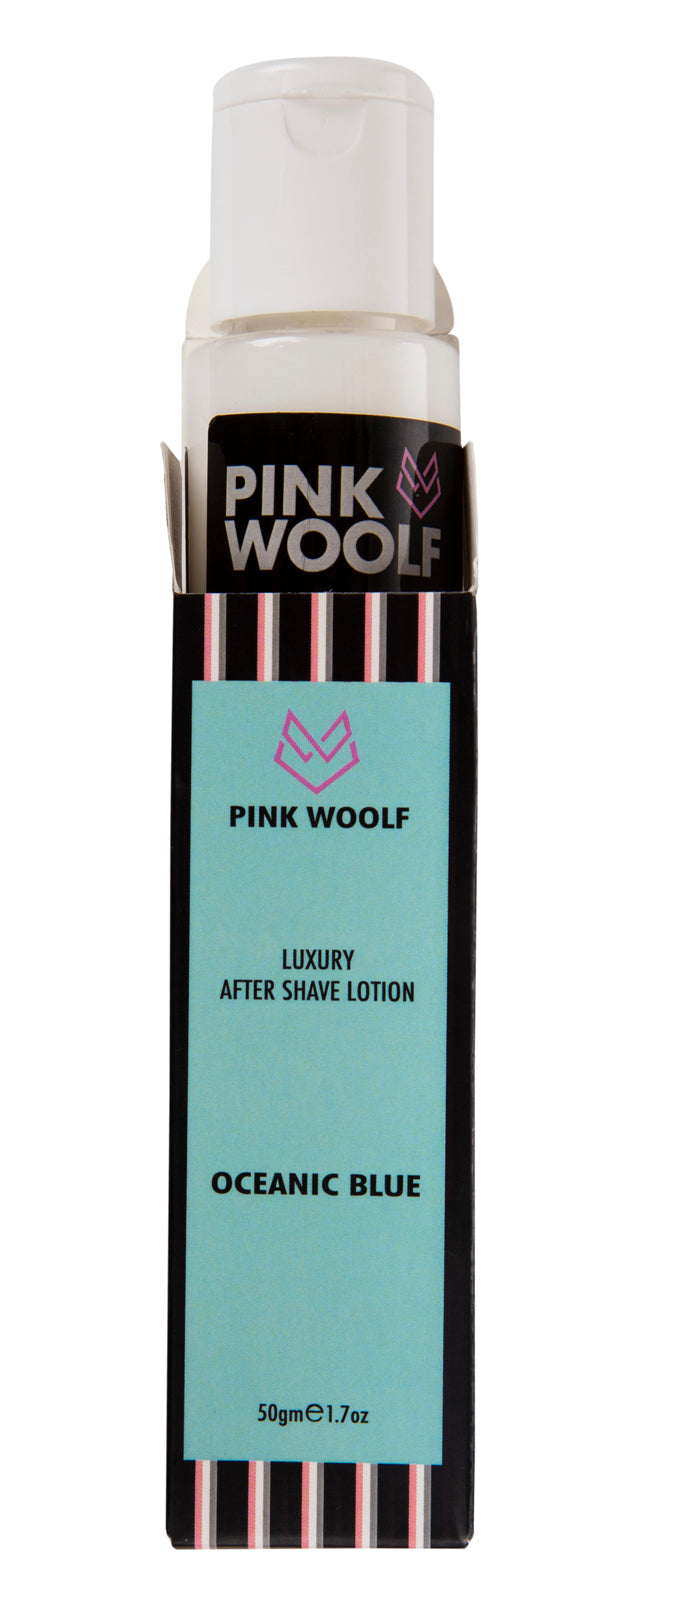 Pink Woolf After Shave Lotion Oceanic Blue